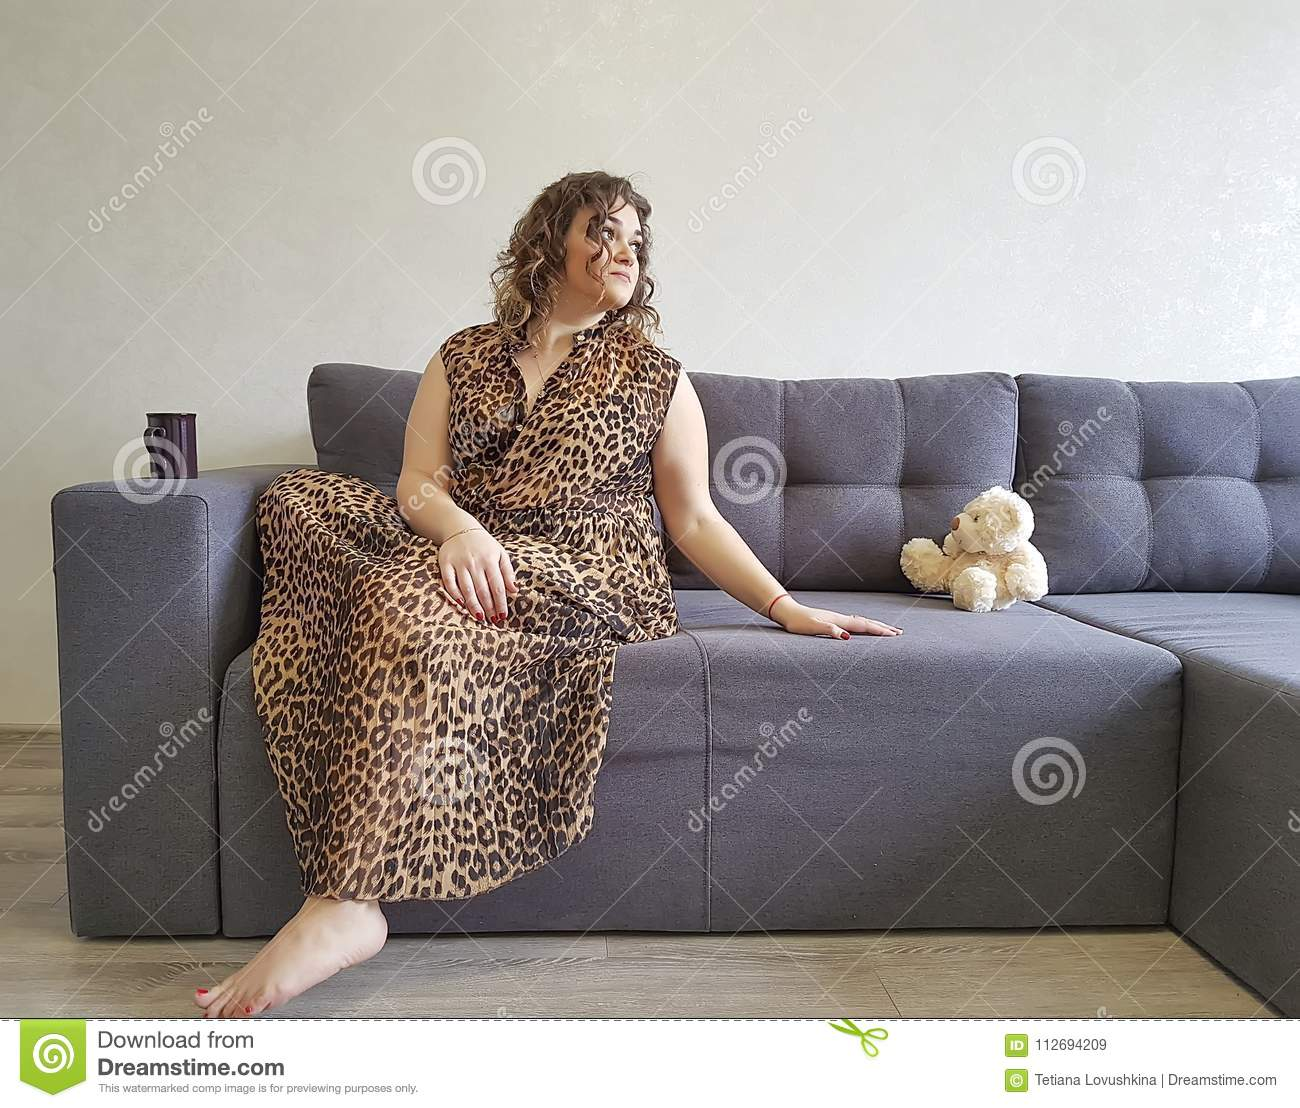 Full girl the sofa teddy bear toy emotions holding relax